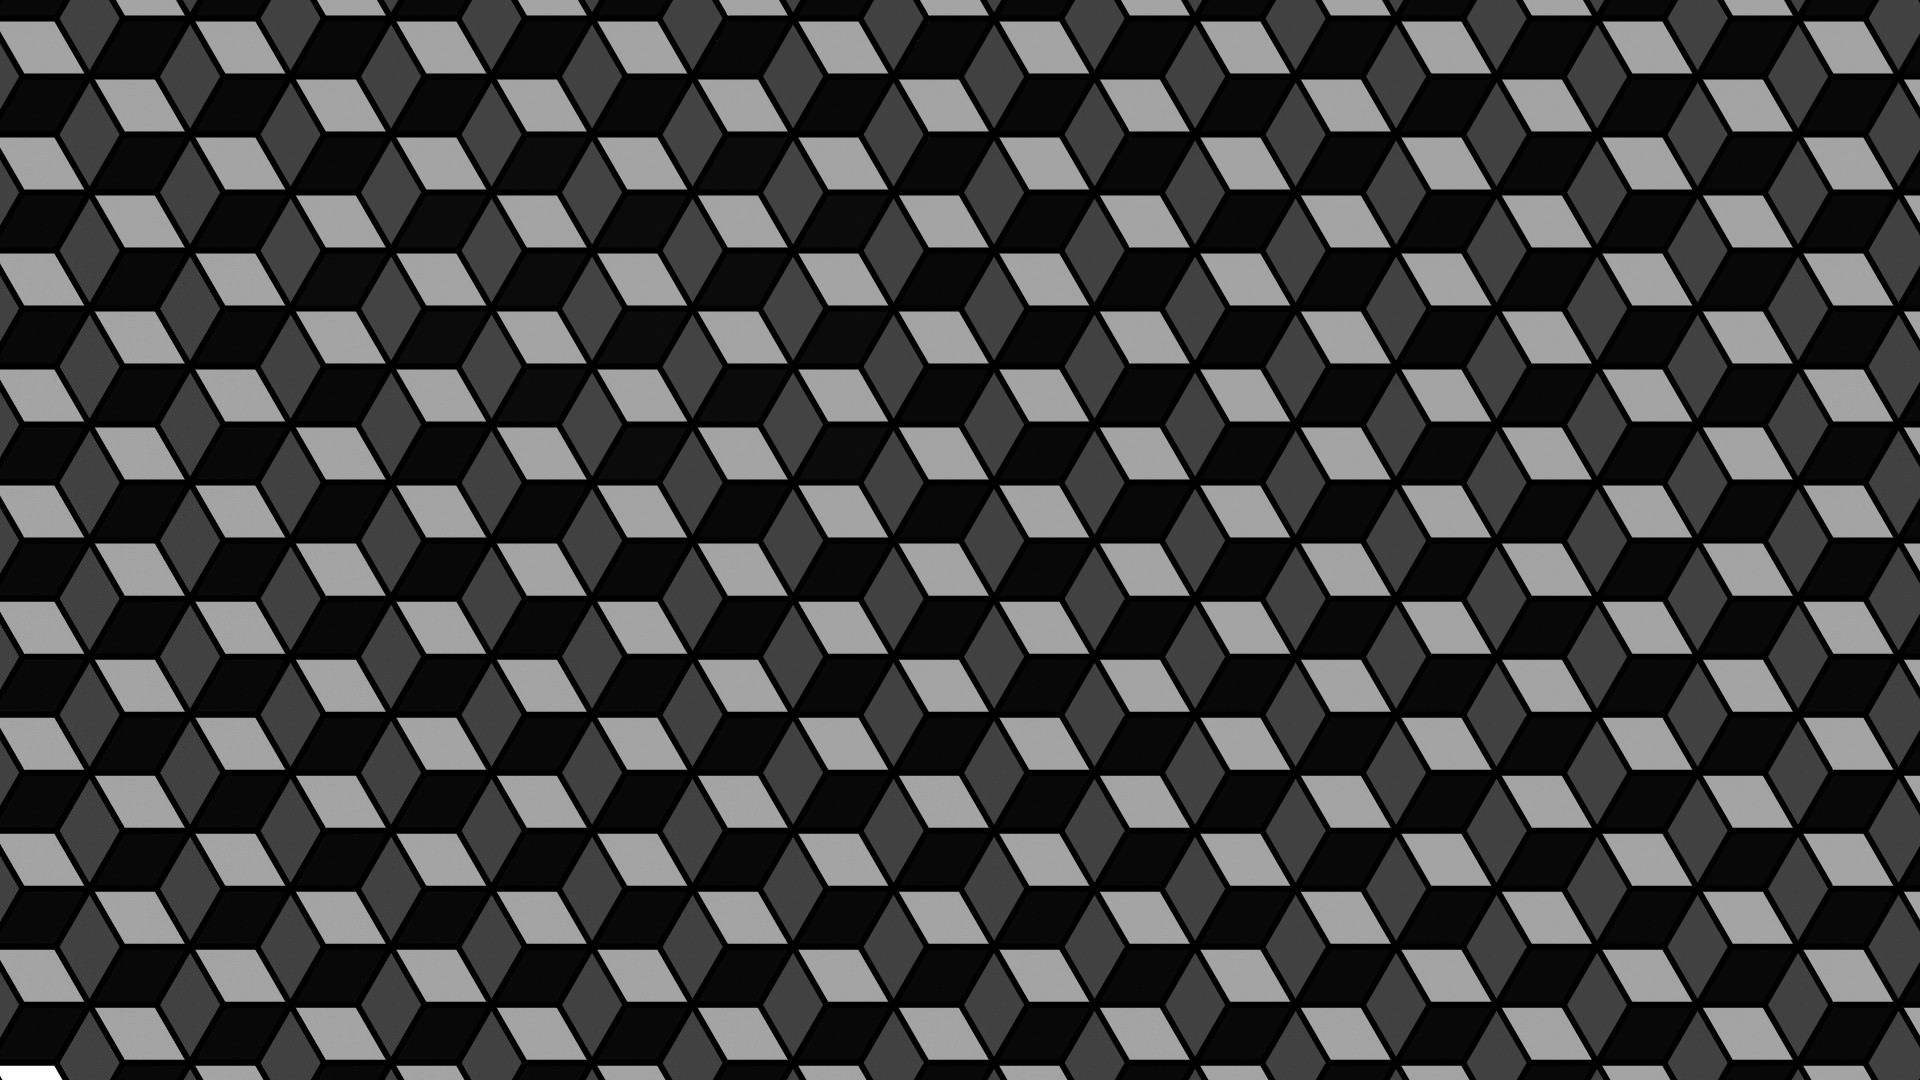 High Definition Mobile Phone And Desktop Wallpapers Optical Illusion Wallpaper Optical Illusions Illusions